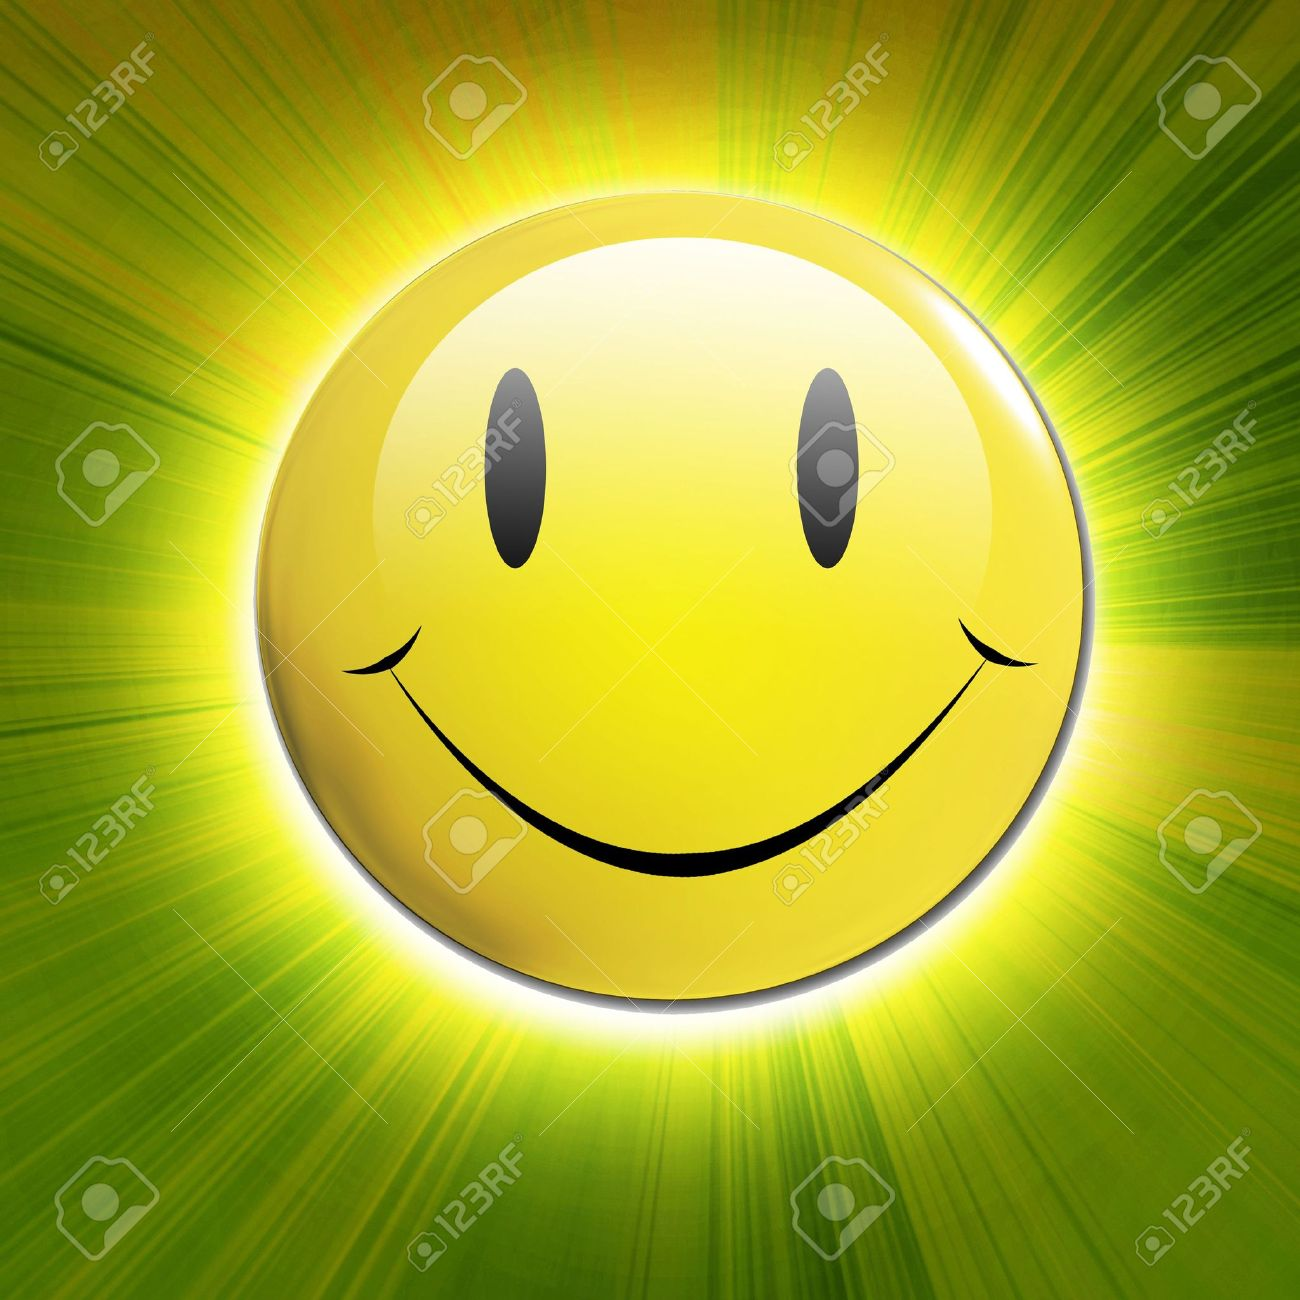 Happy smiley face on a bright green background stock photo picture happy smiley face on a bright green background stock photo 3524909 voltagebd Image collections